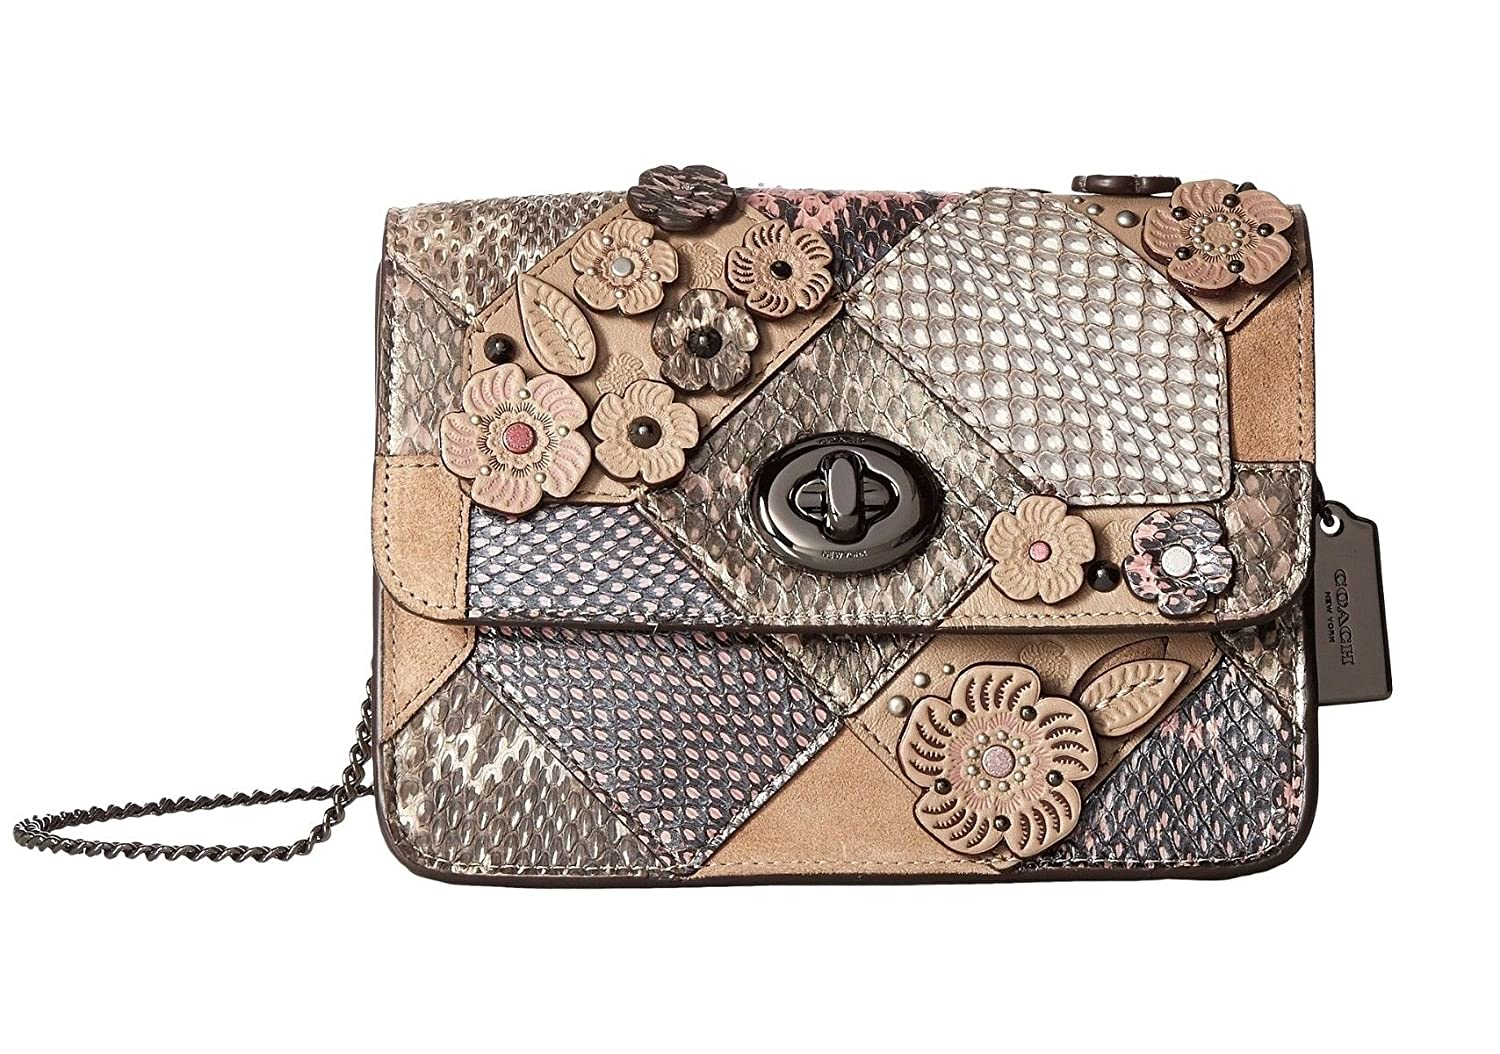 9ee8ddc415c4 COACH Women s Patchwork Snake Bowery Crossbody Dk Multicolor One Size   Handbags  Amazon.com